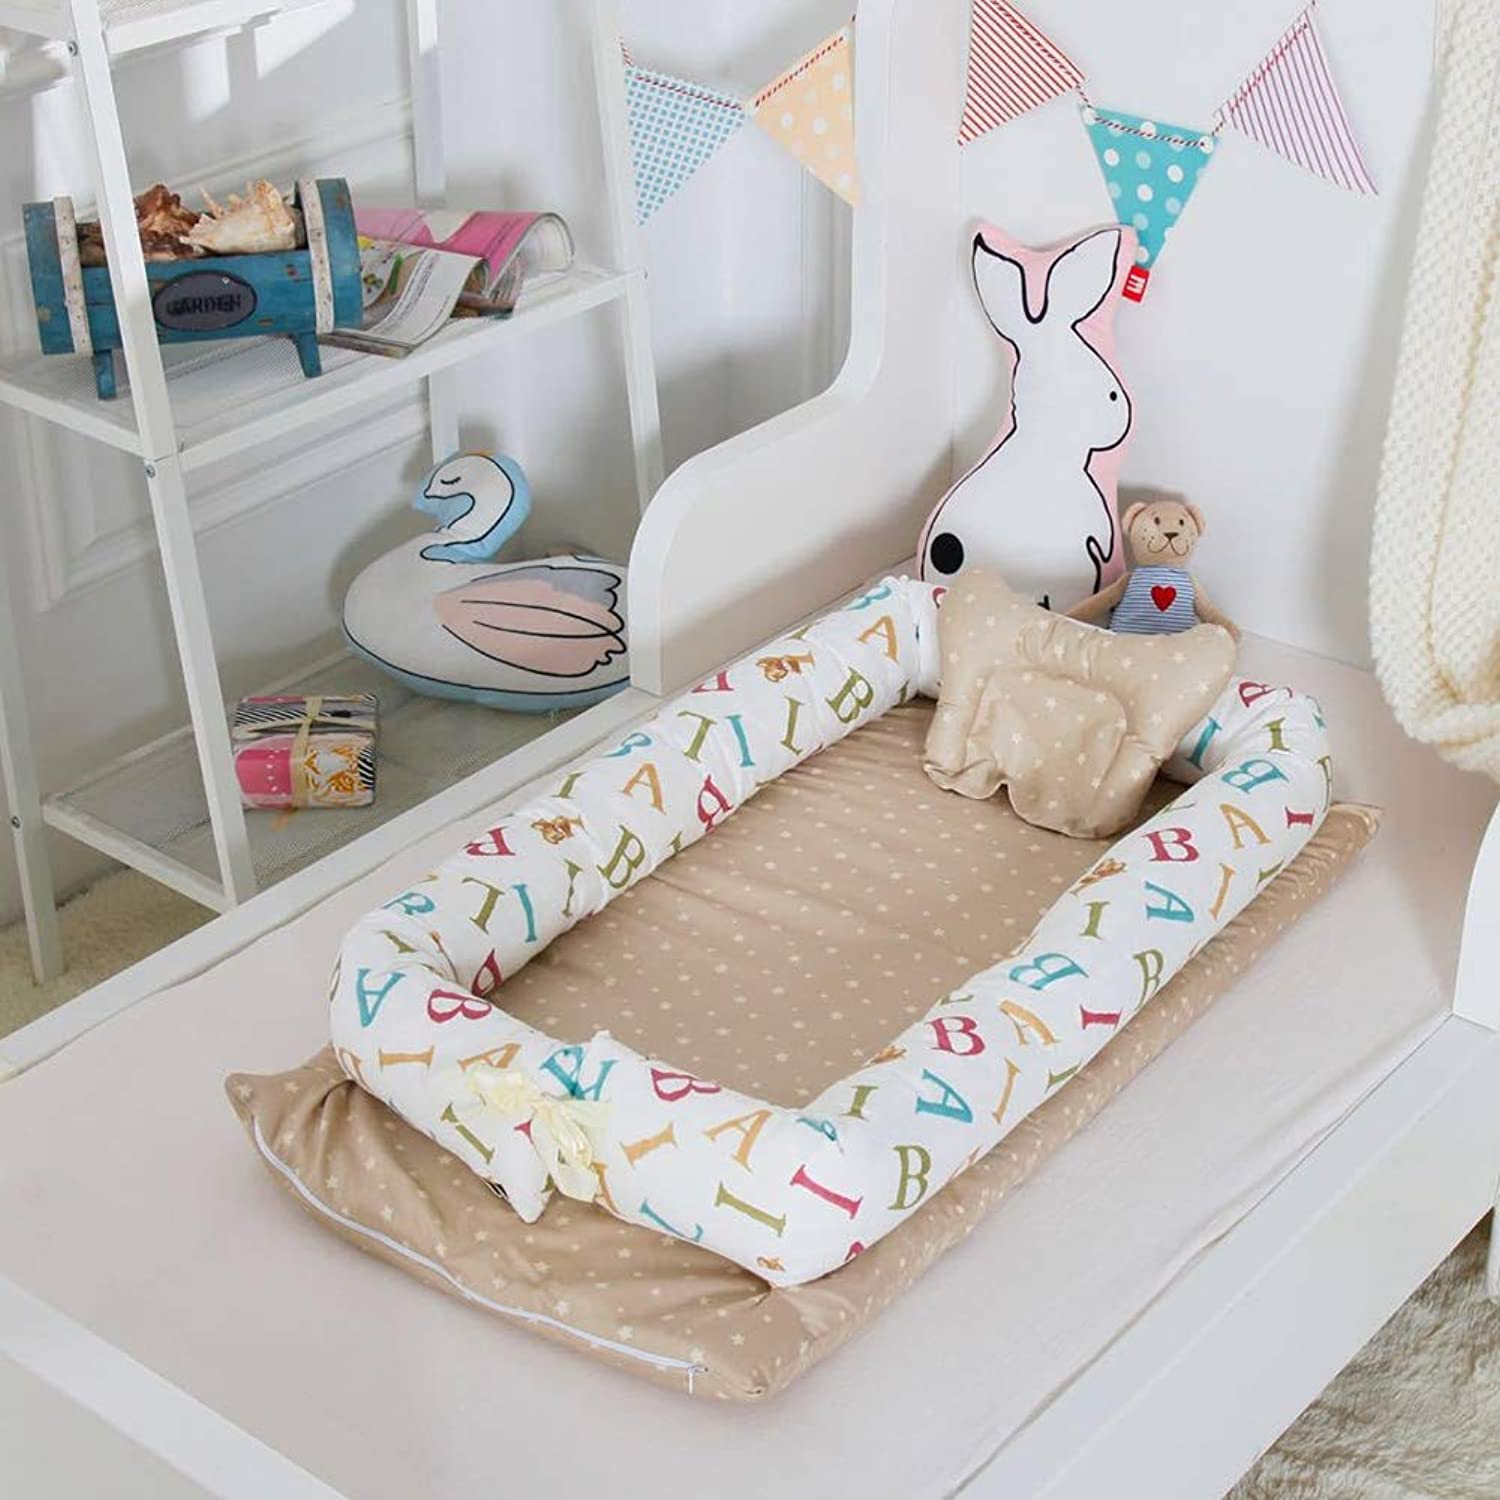 L L Baby Nest Crib Cotton Portable Newborn Isolated Bed Detachable Cover 90  55  15CM 35.4  21.7  5.9 inch, 13